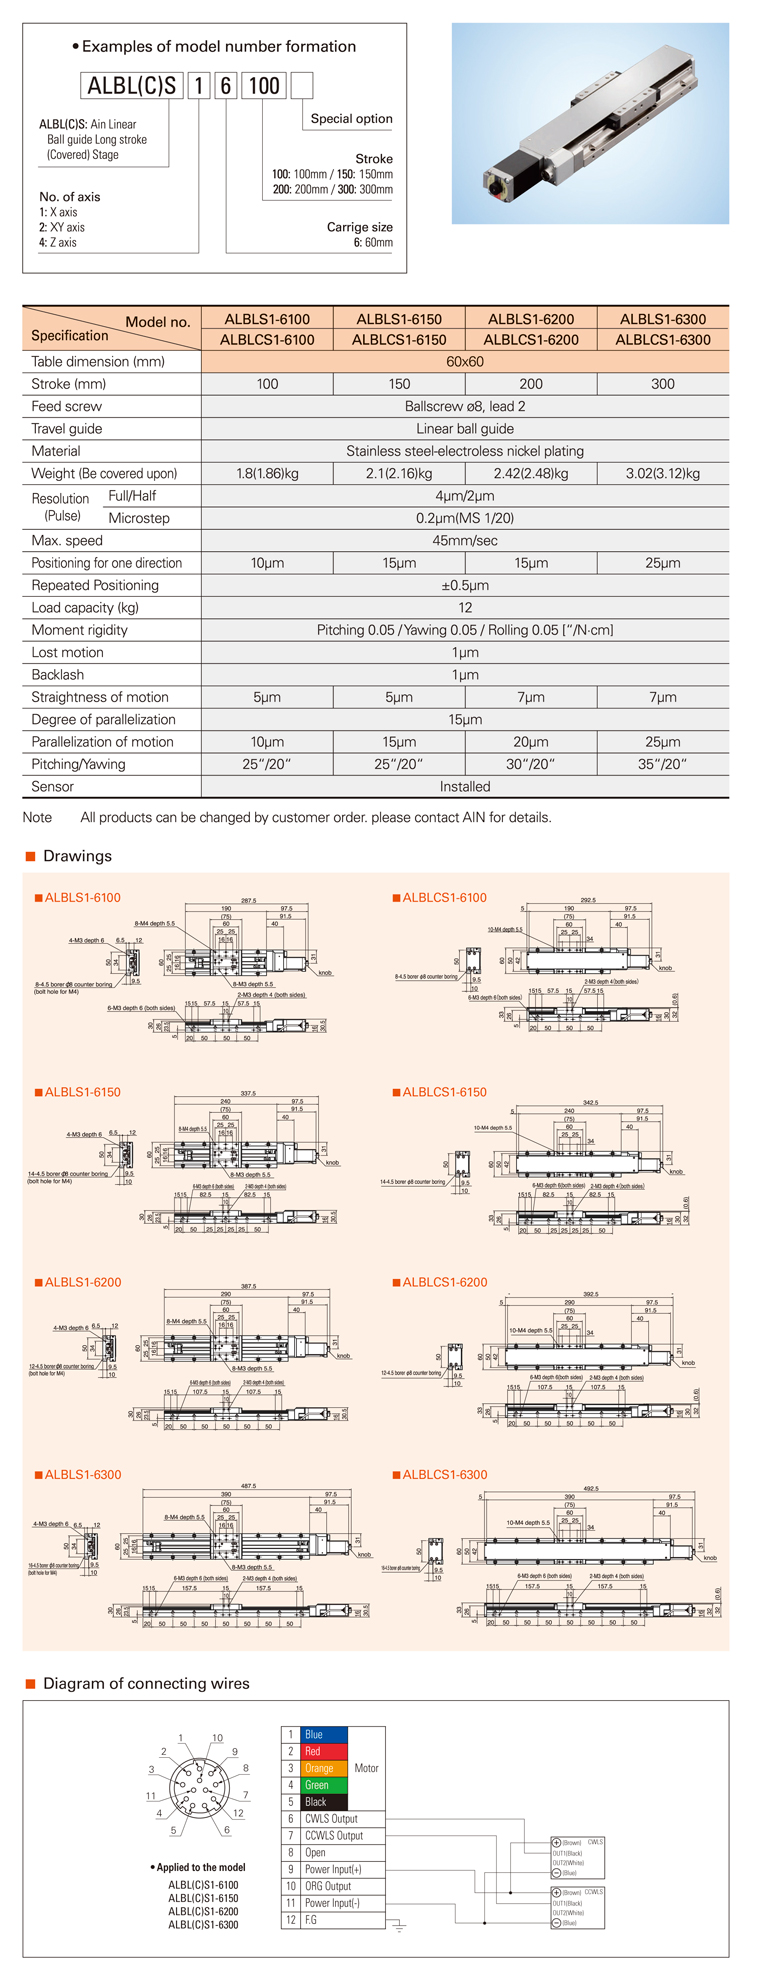 AIN Motorized Linear Ball Guide Long Stroke (Covered) Stage ALBL(C)S1-6100/6150/6200/6300 Type